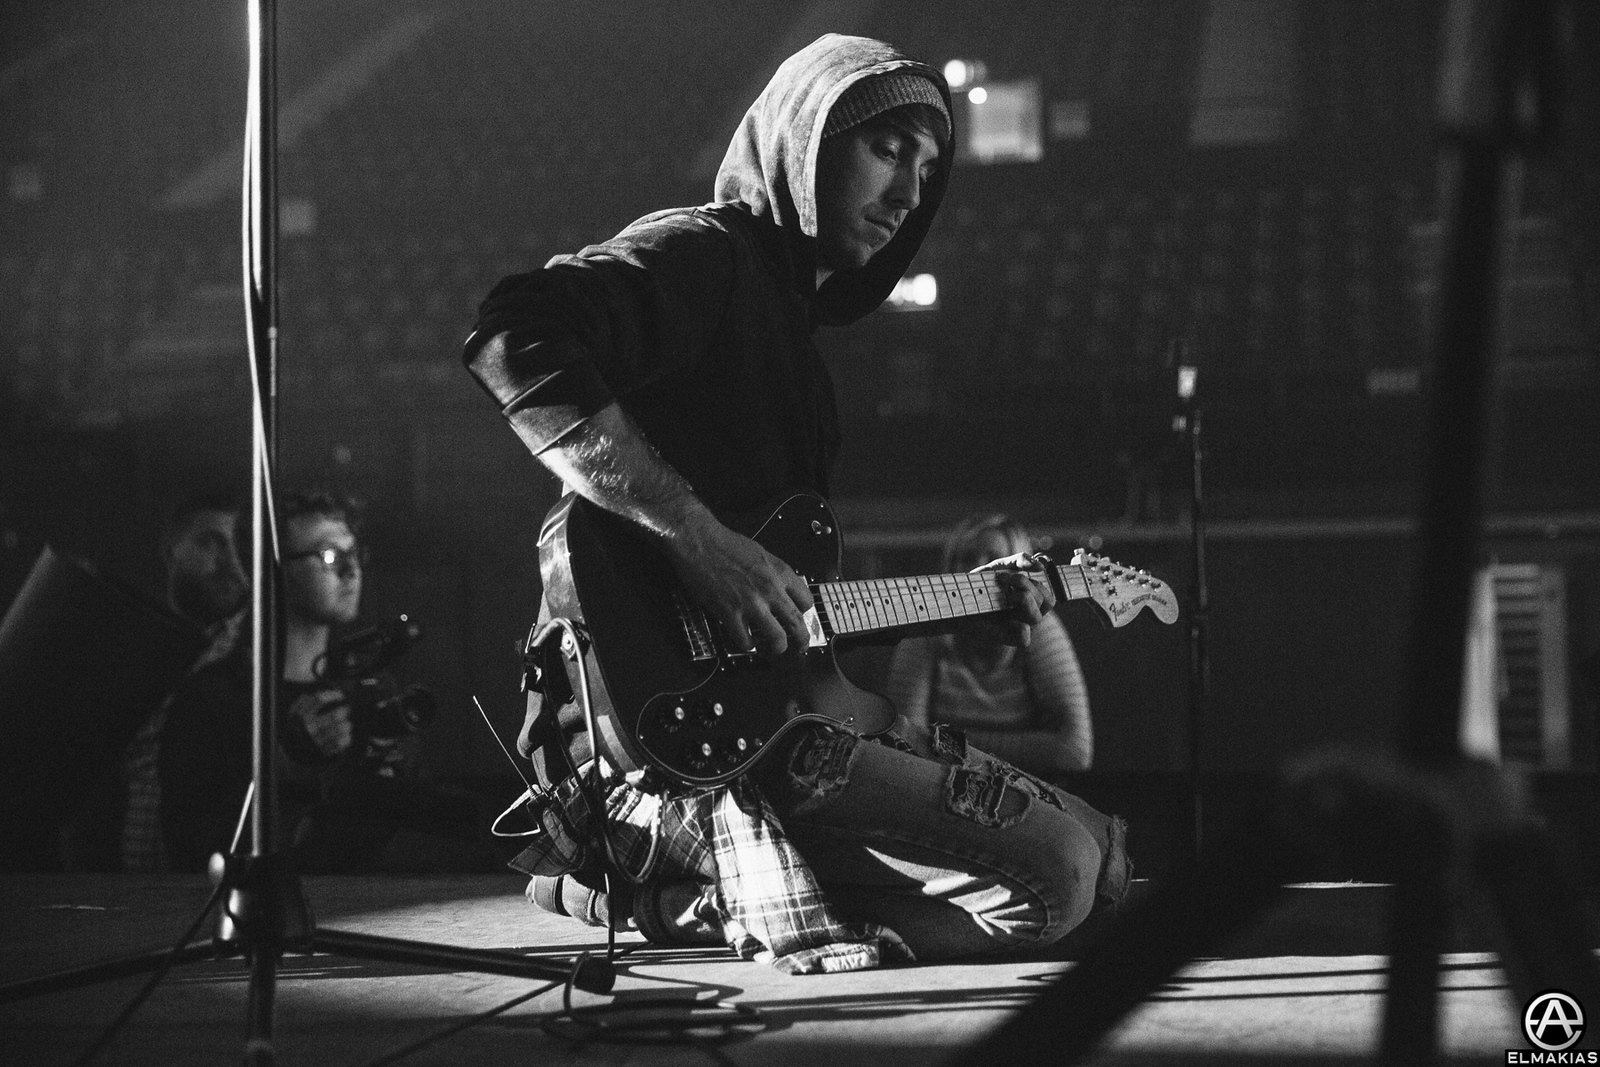 Alex Gaskarth of All Time Low sound checking at Wembley Arena